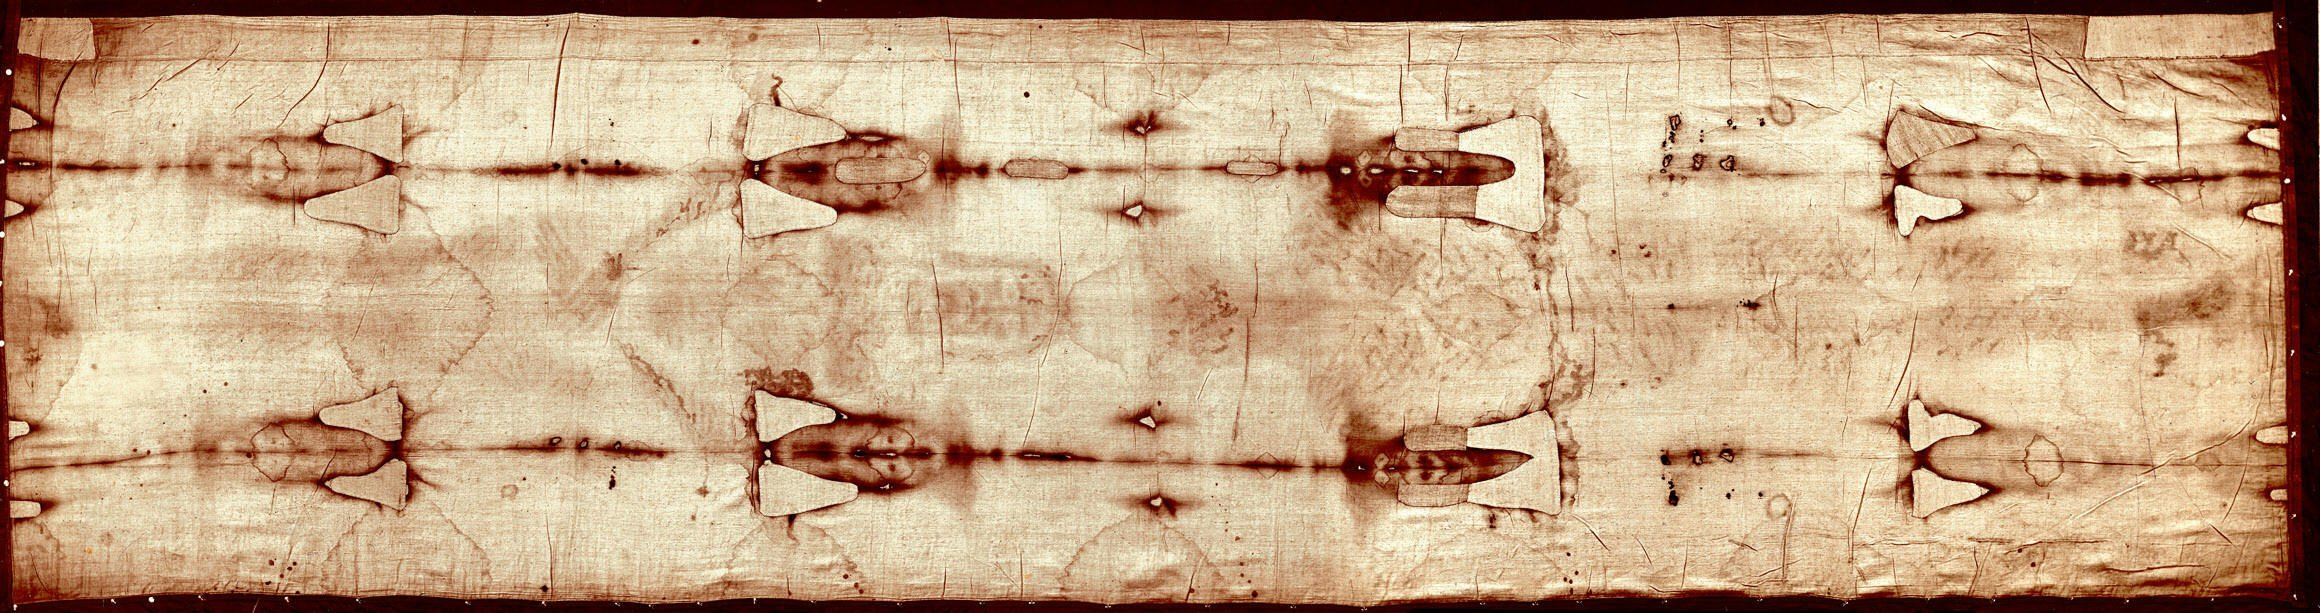 dating shroud of turin widow started dating brother in law